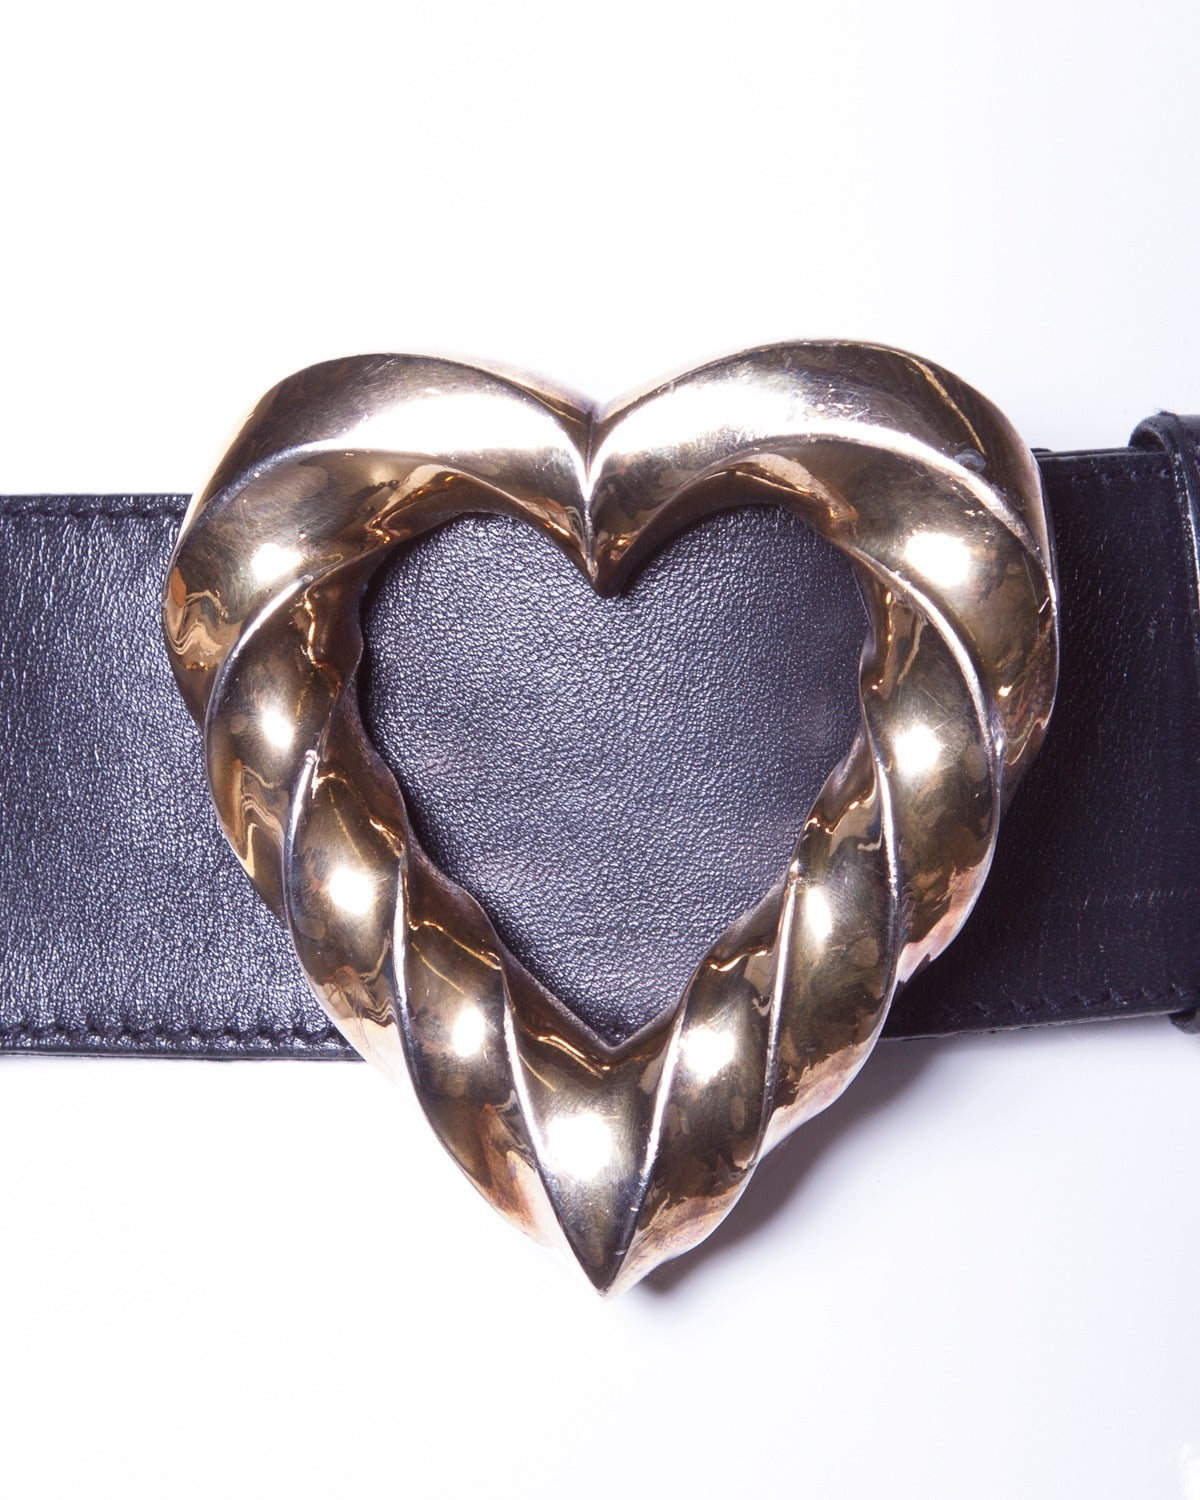 Iconic Escada vintage belt with a giant goldtone heart buckle and smaller heart detailing around the belt.